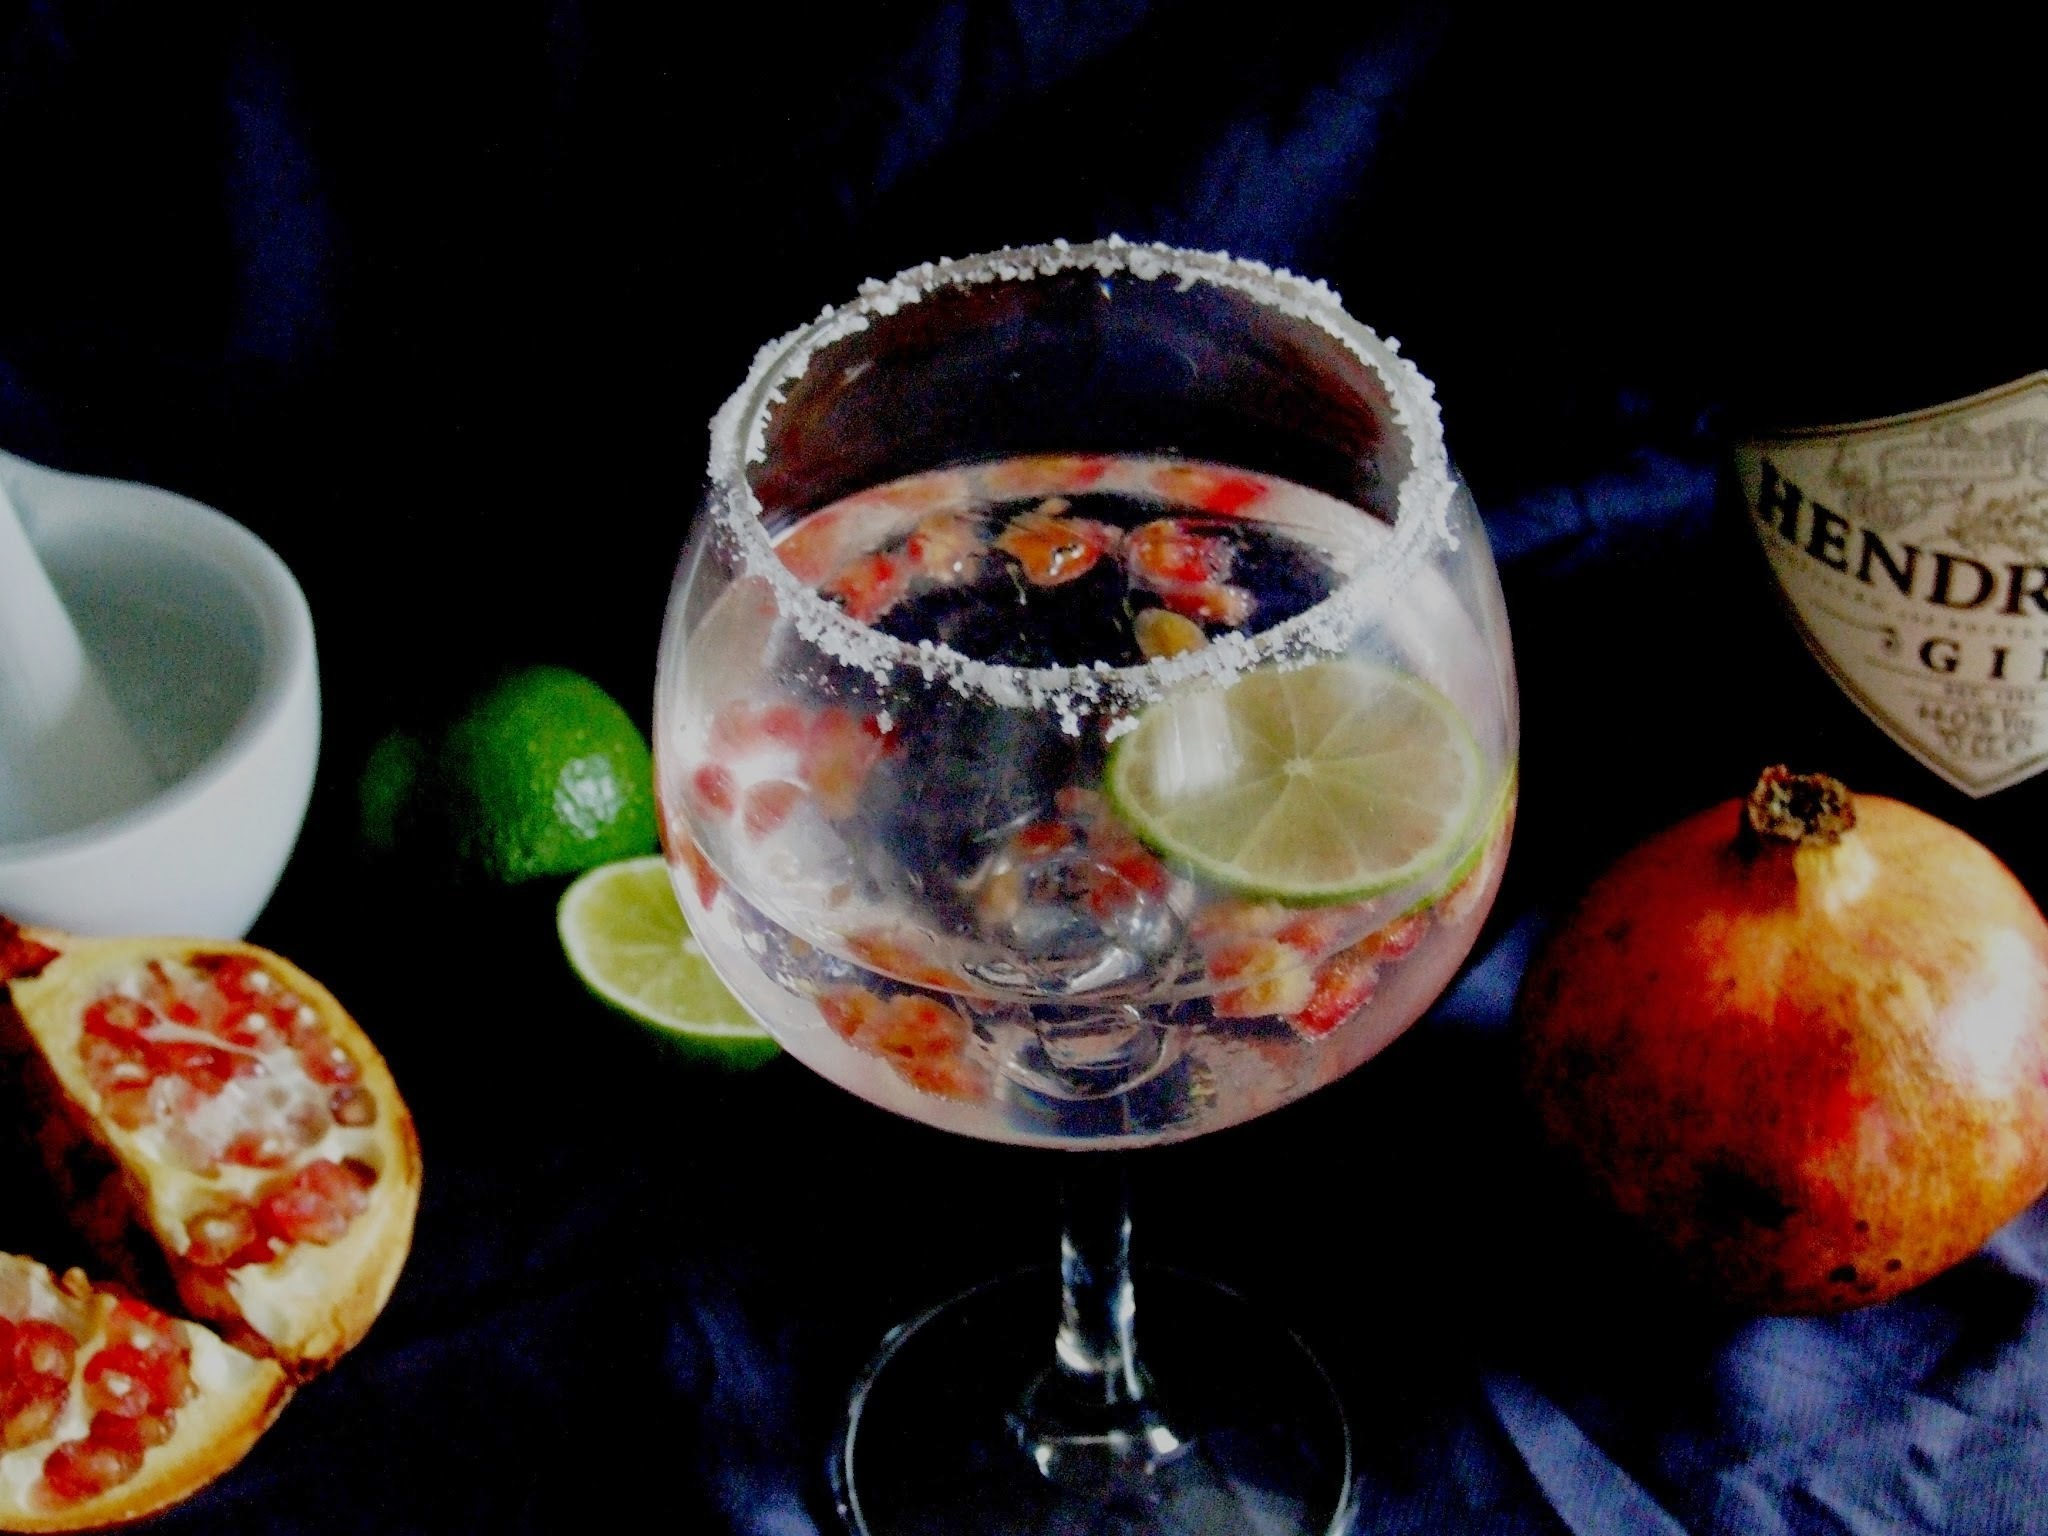 Gin tónico com romã e lima para brindar a 2015 . Gin and tonic with pomegranate and lime to toast to 2015